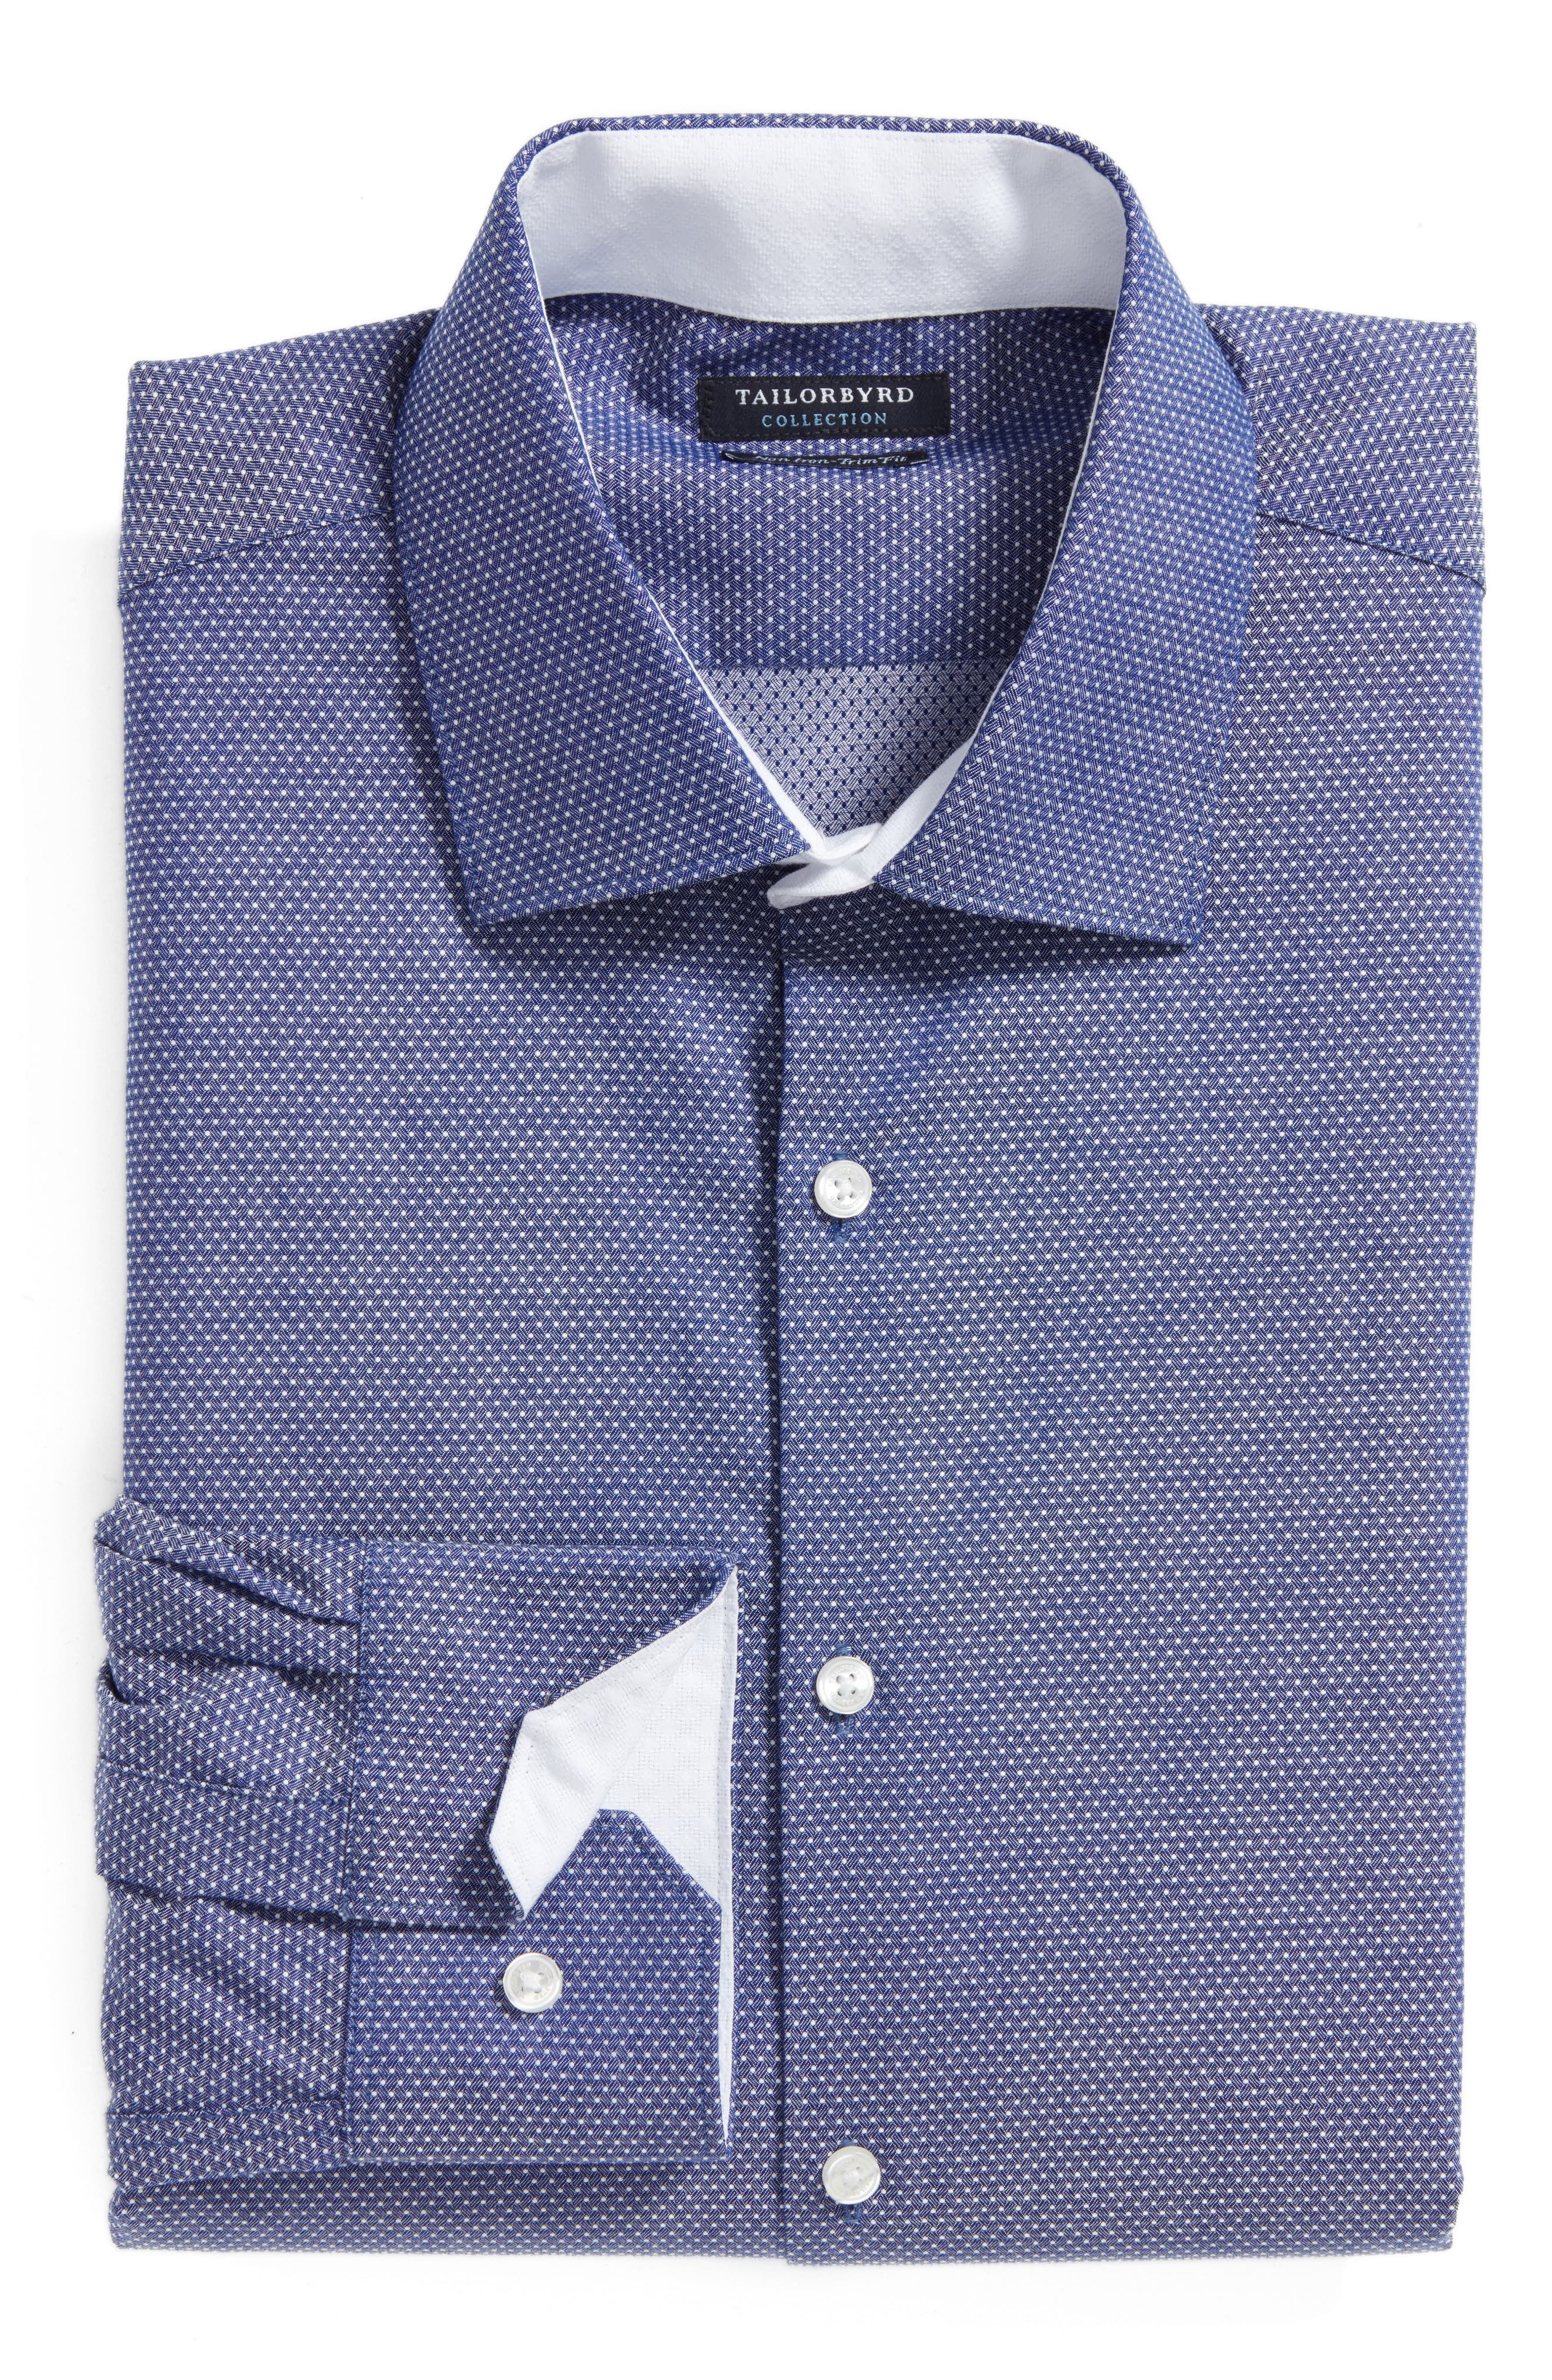 Tailorbyrd Eden Isle Trim Fit Non-Iron Geometric Dress Shirt